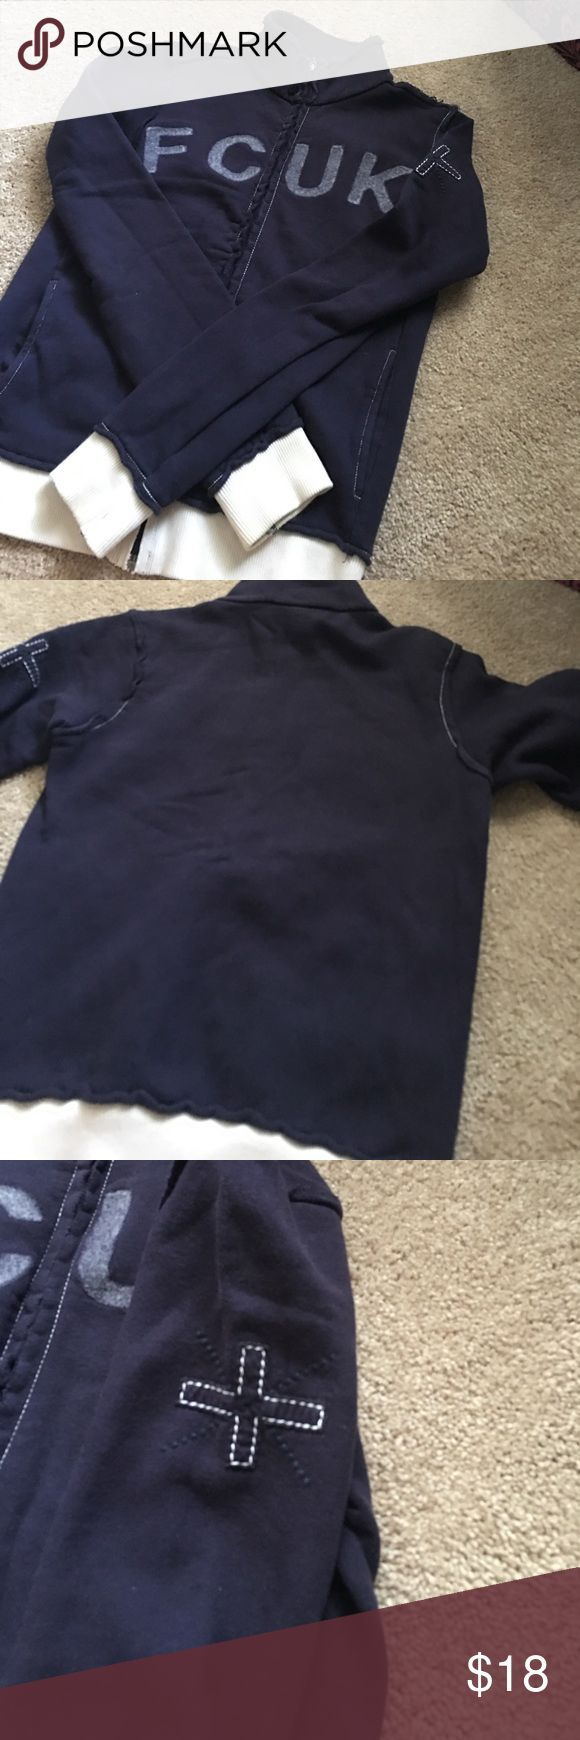 French Connection zip up sweater Zip up sweater. Navy blue with off white waist and wrist trim. Two front pockets. Women's small. Warm. Missing zipper tab as shown in picture. French Connection Sweaters